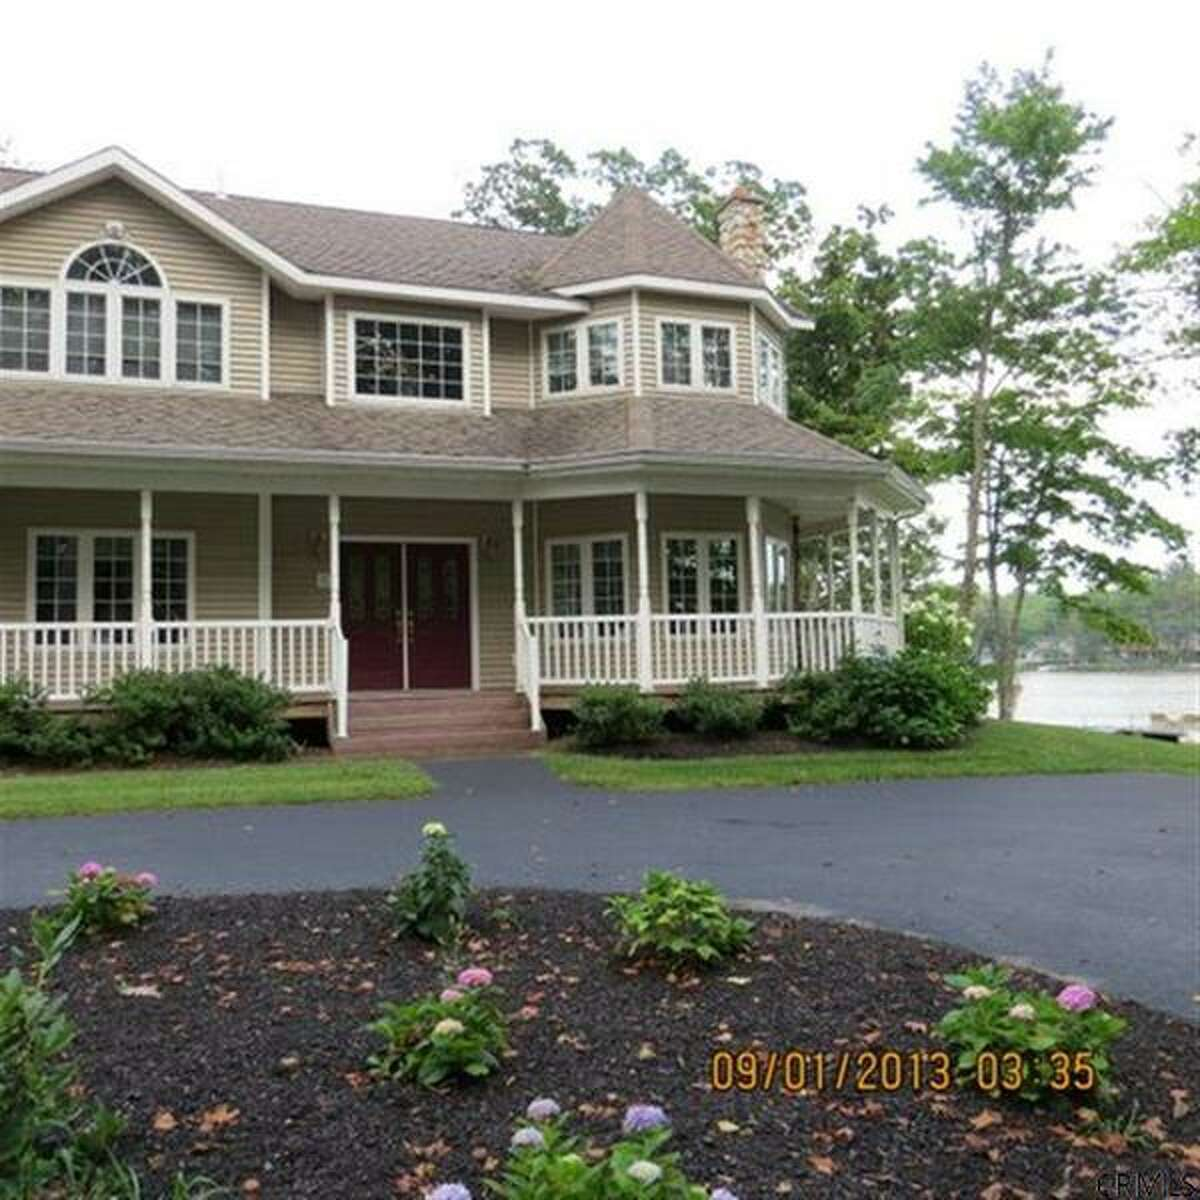 $99,000,000 . 8287 MARIAVILLE RD, Pattersonville, NY 12137.View this listing.Nope, this is not a typo. This house is really listed at $99,000,000. Take a look at this home and others on the market listed in the millions.